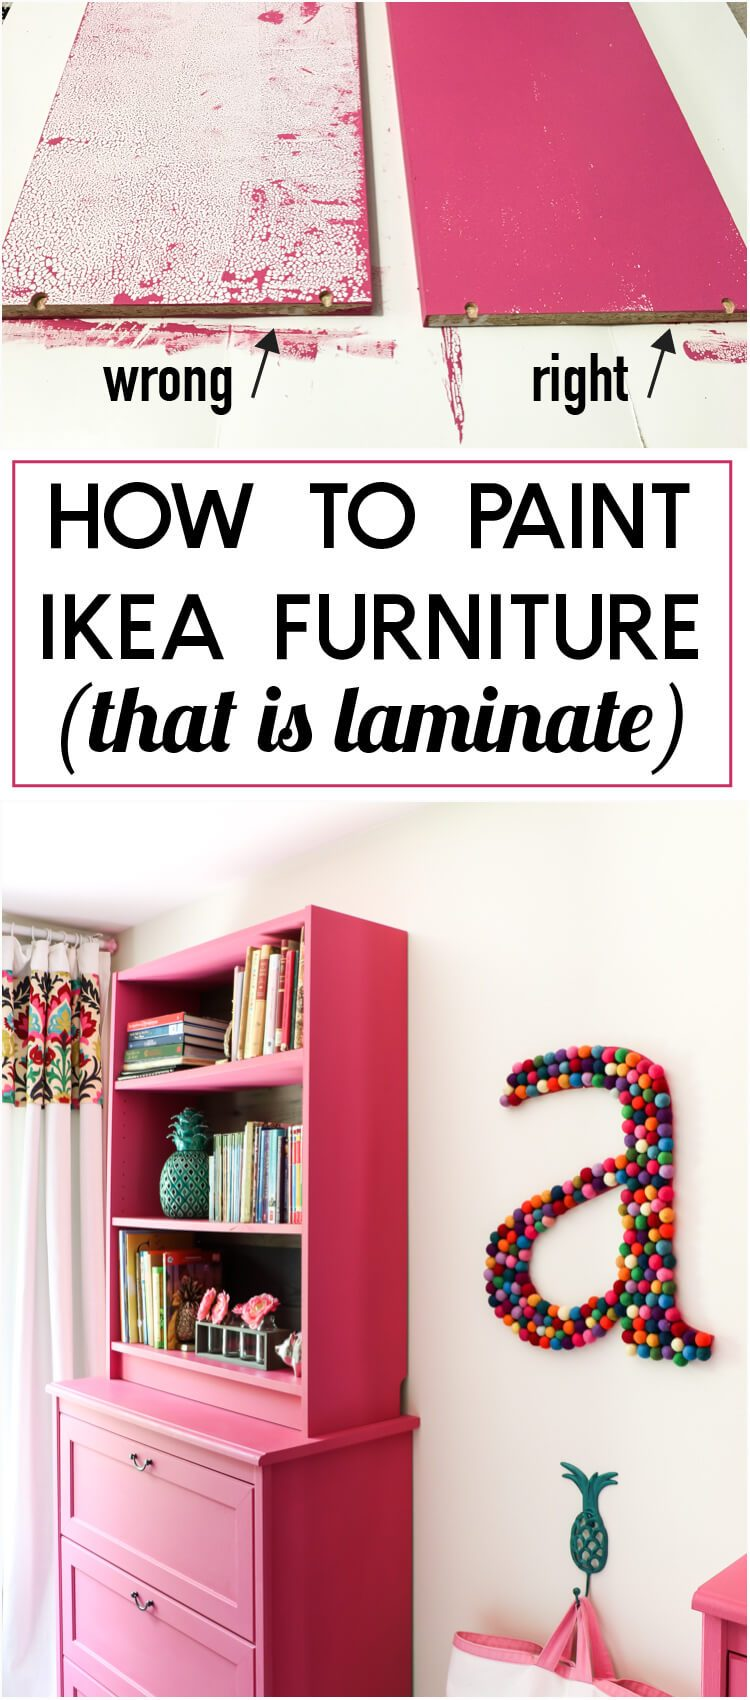 A Tutorial For Painting Ikea Furniture